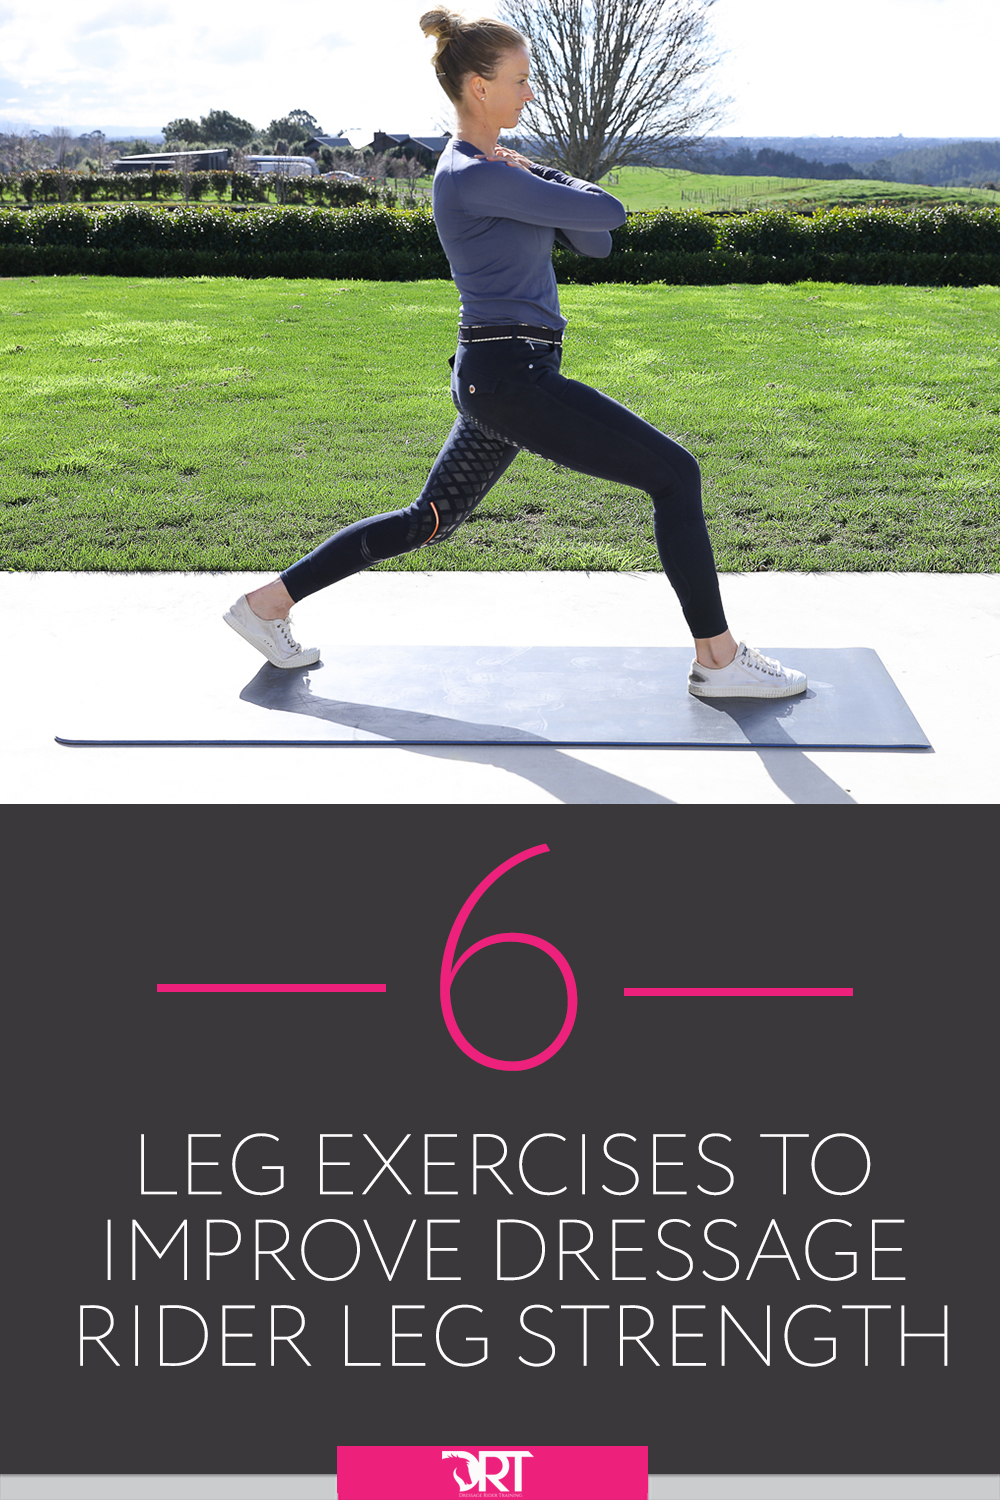 Dressage Rider Leg Strength 6 Video Exercises To Help You Improve